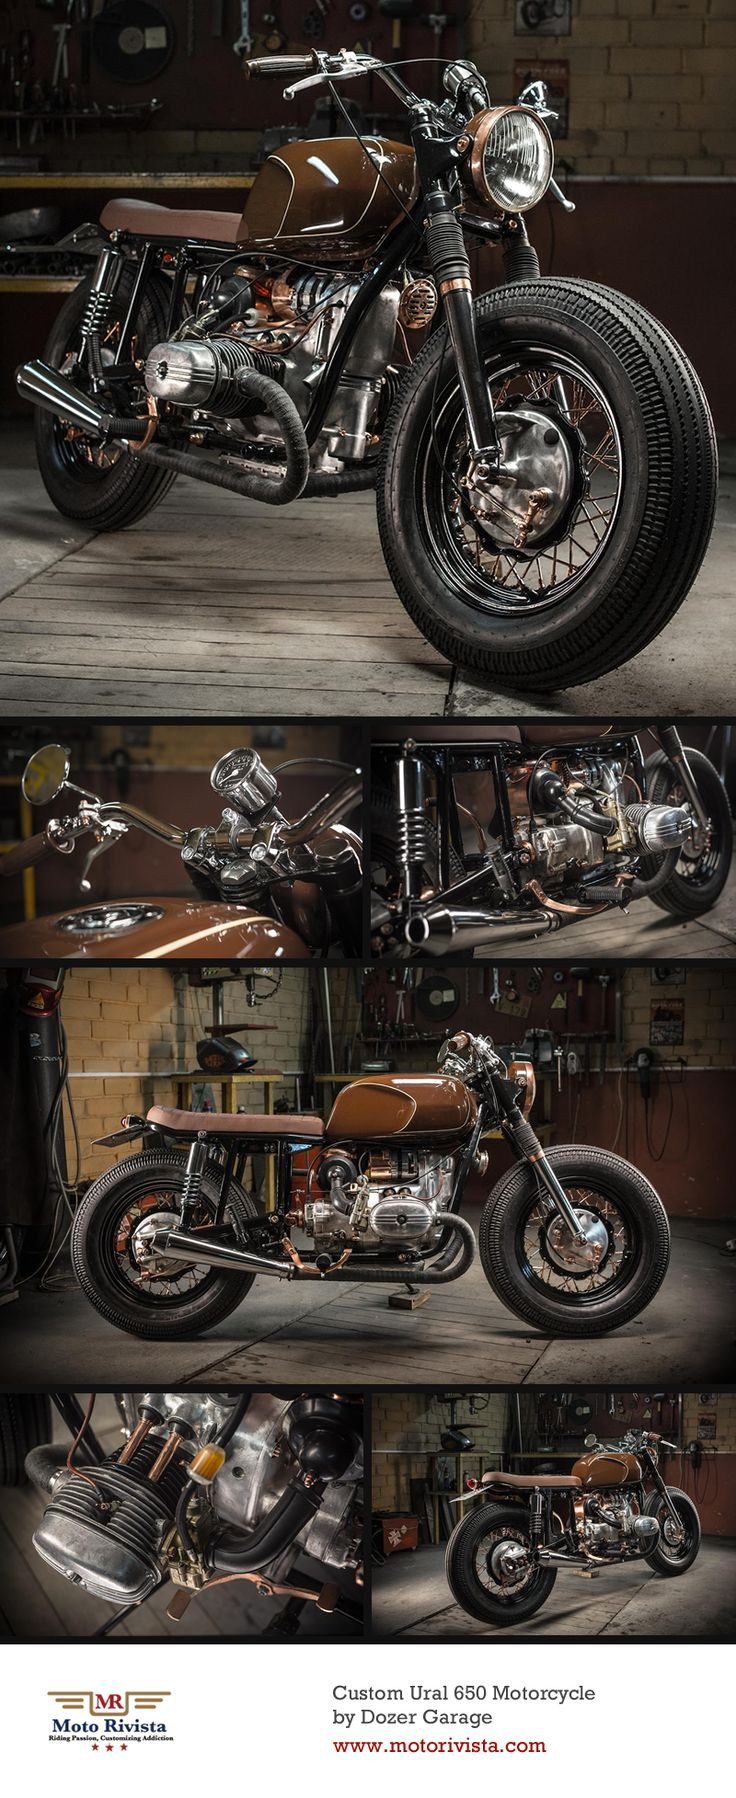 "#Ural 650 #Custom by DoZer #Garage | ""In #Ukraine, when there was no #motorcycle culture I was inspired by the work of the European and Japanese masters. Nowadays we have a great relationship with our clients, they tend to remain as friends. The most enjoyable part of customization is upon it's completion, the joy from the client. Today the good news is the motorcycle culture in Ukraine is developing with more and more people riding motorcycles."" DoZer ~ Featured on www.motorivista.com"